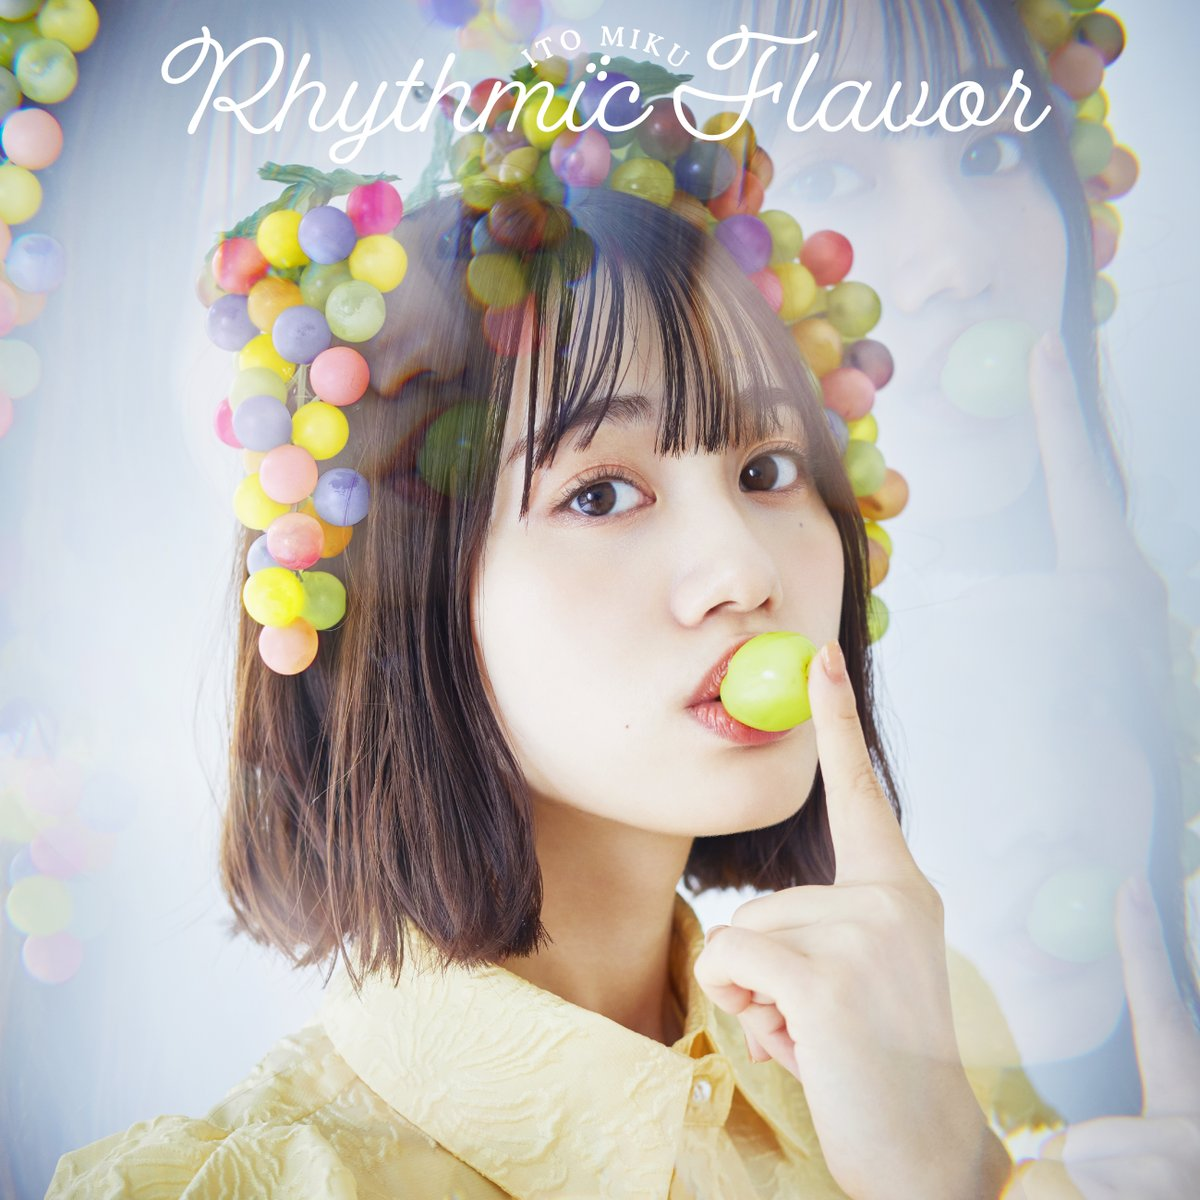 伊藤美来 - Rhythmic Flavor [2020.12.23+MP3+RAR]